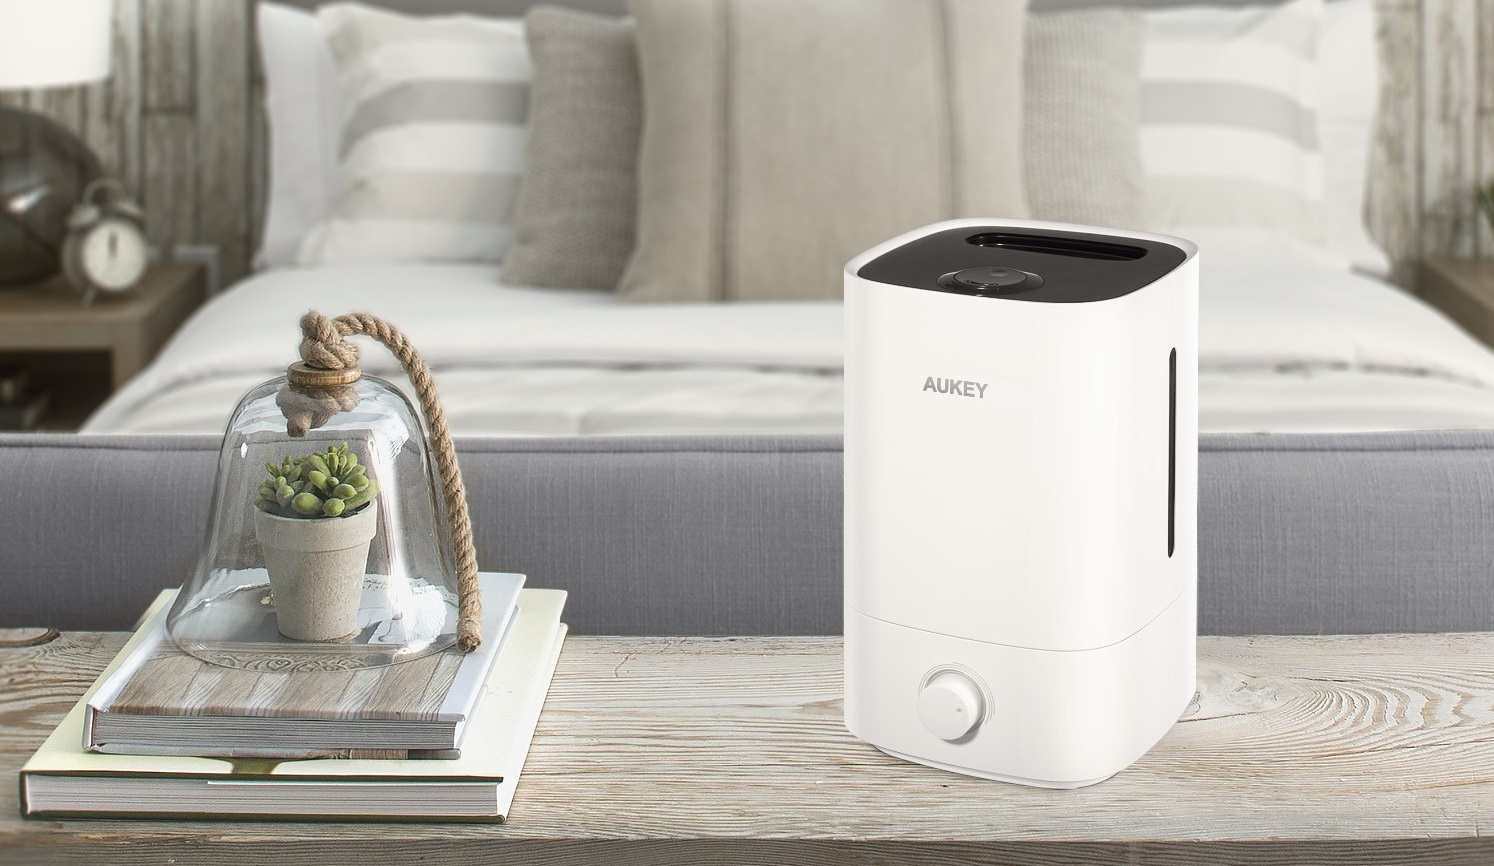 Decouverte Humidificateur Ultrasonique Vapeur Aukey Qs 3501